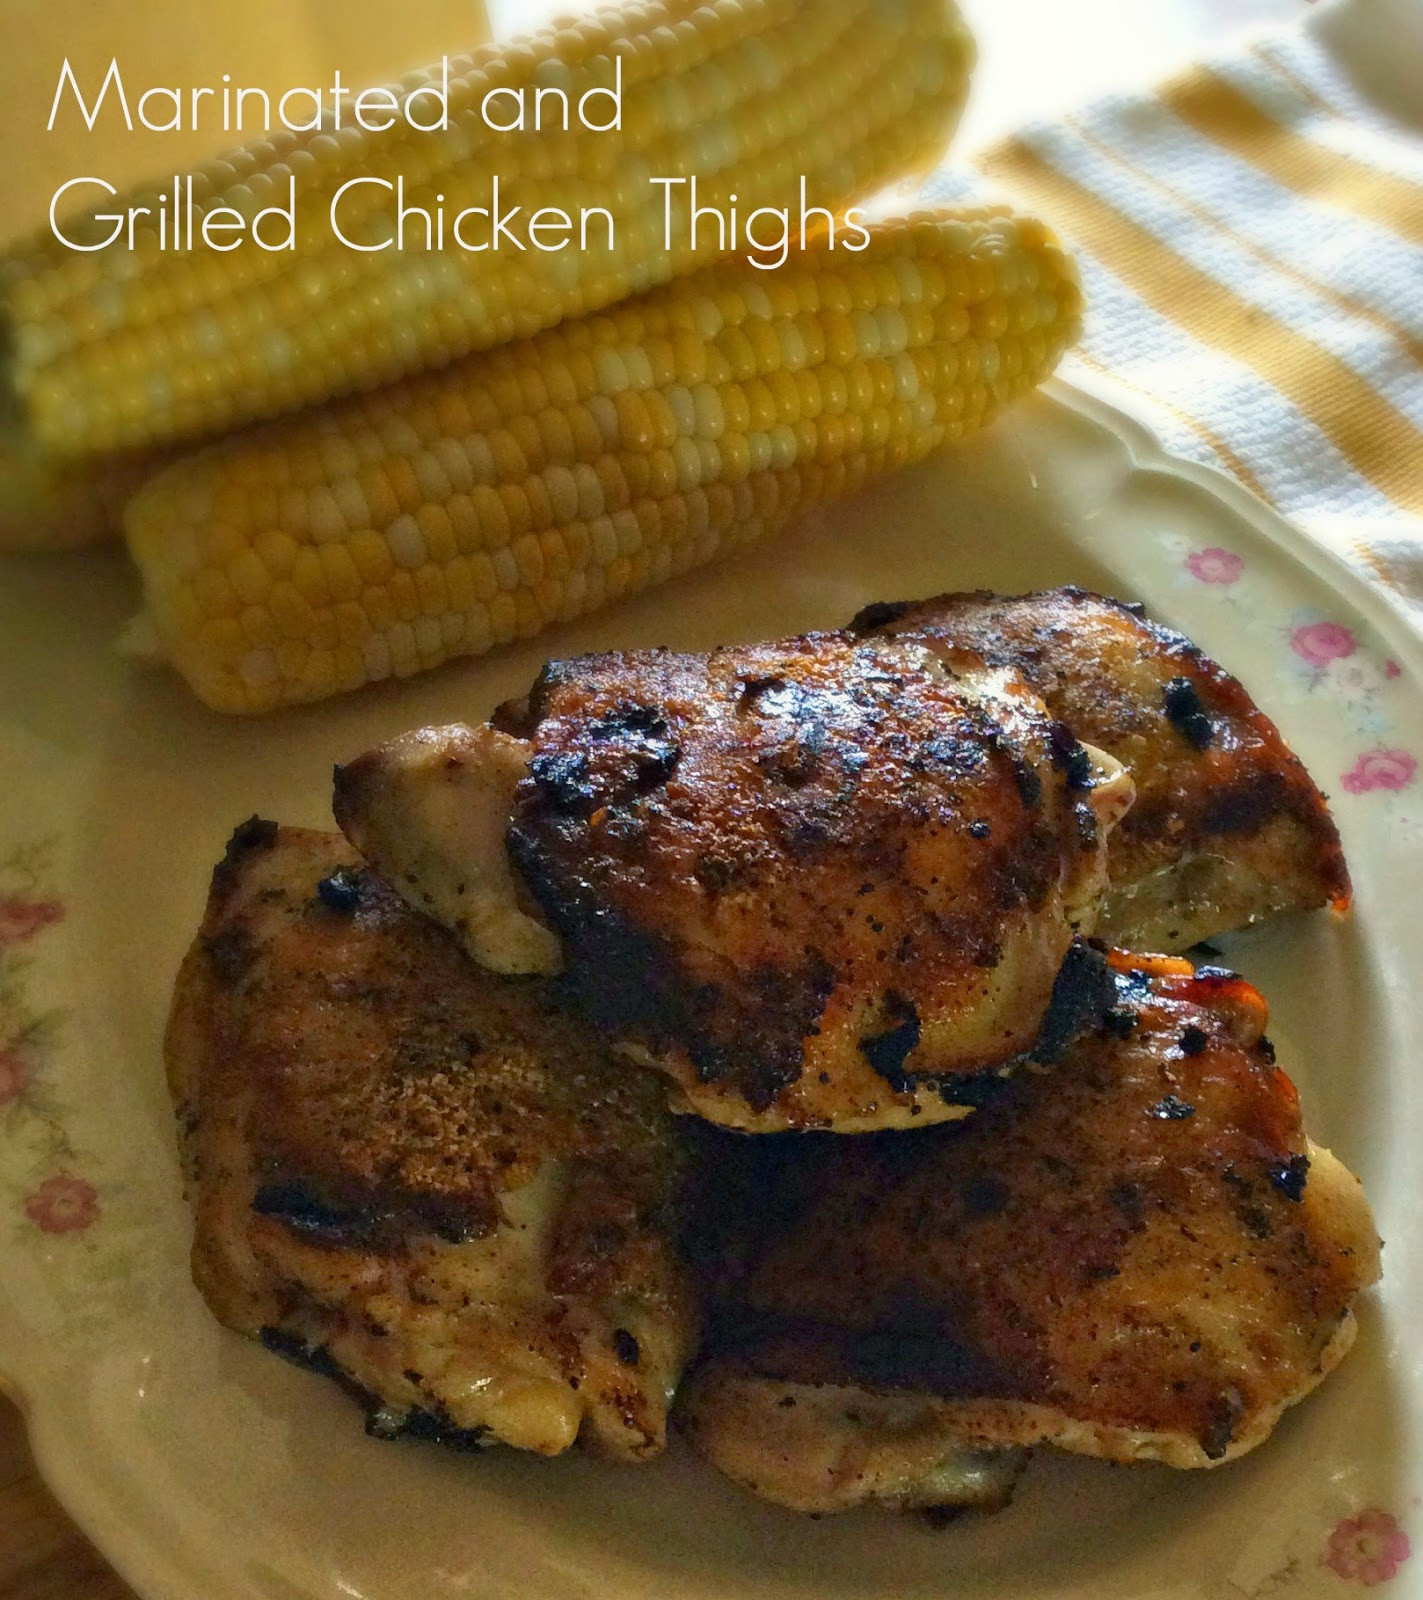 Grilled Chicken Thighs Marinade  Cooking A Bud Marinated and Grilled Chicken Thighs